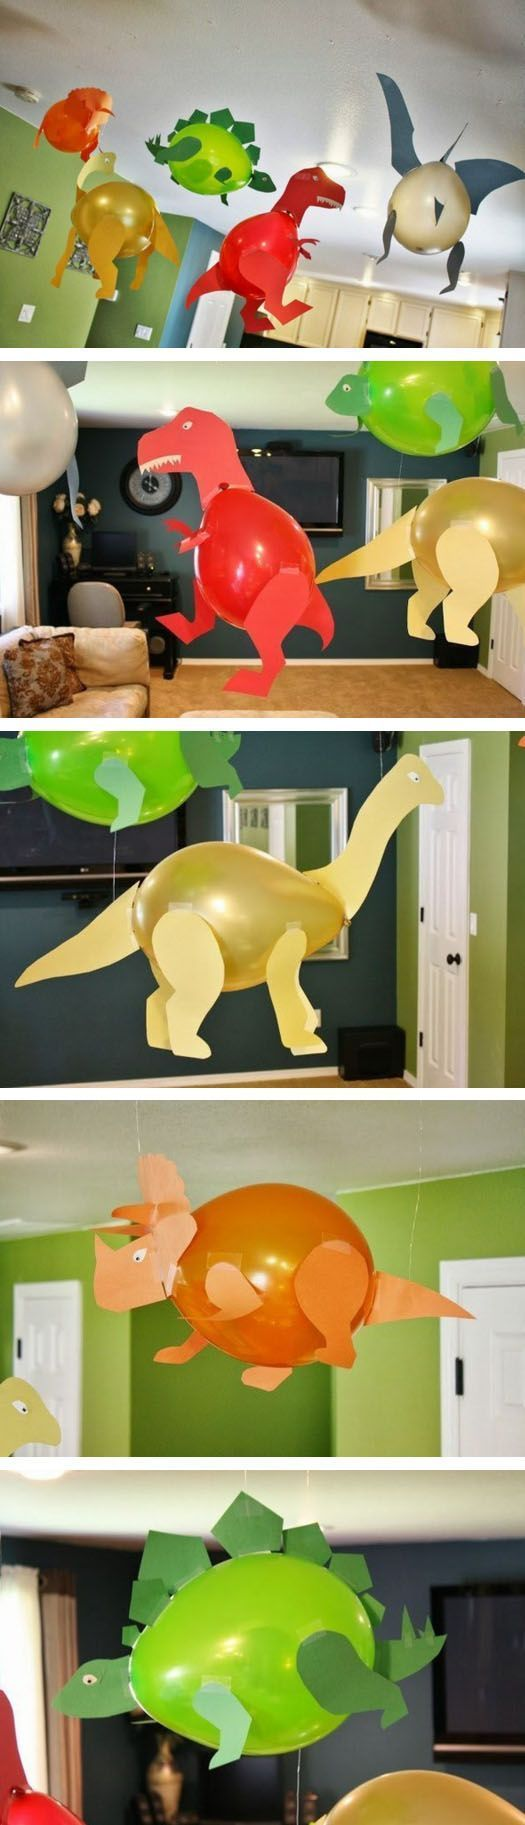 Dinosaur Balloons for Kids' Party Decoration.